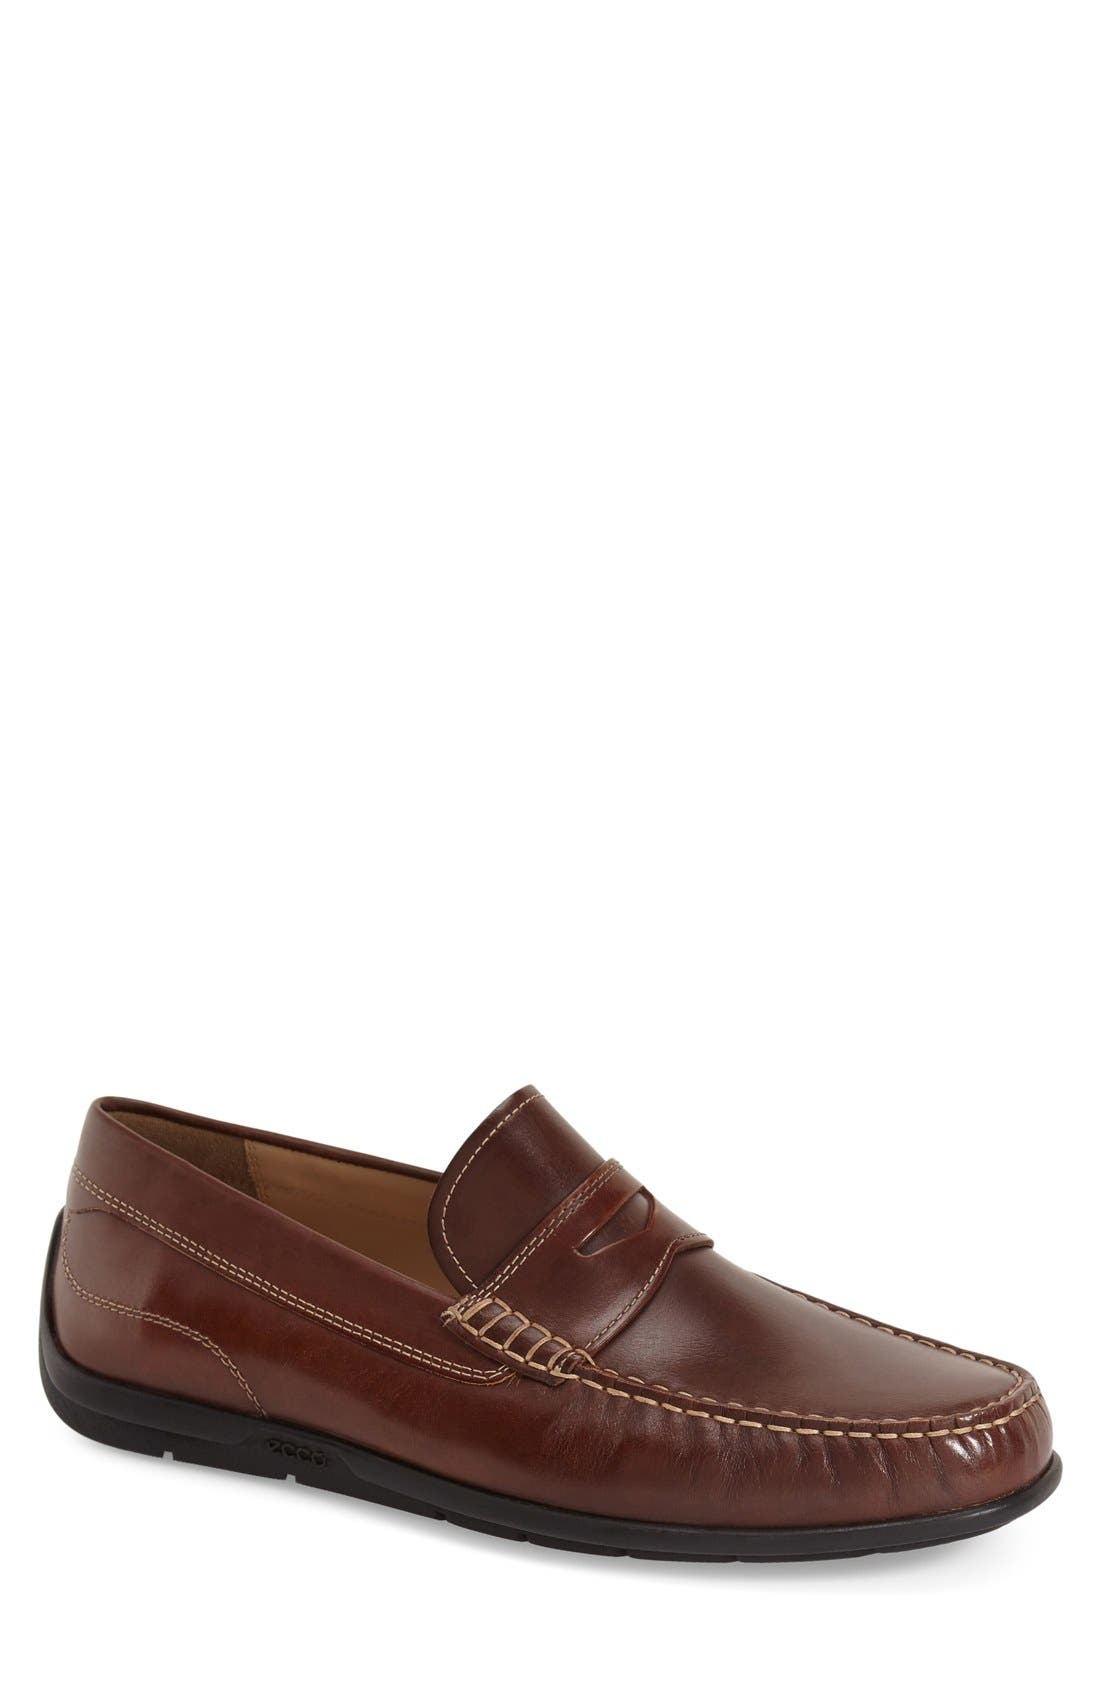 'Classic Moc 2.0' Penny Loafer,                             Main thumbnail 2, color,